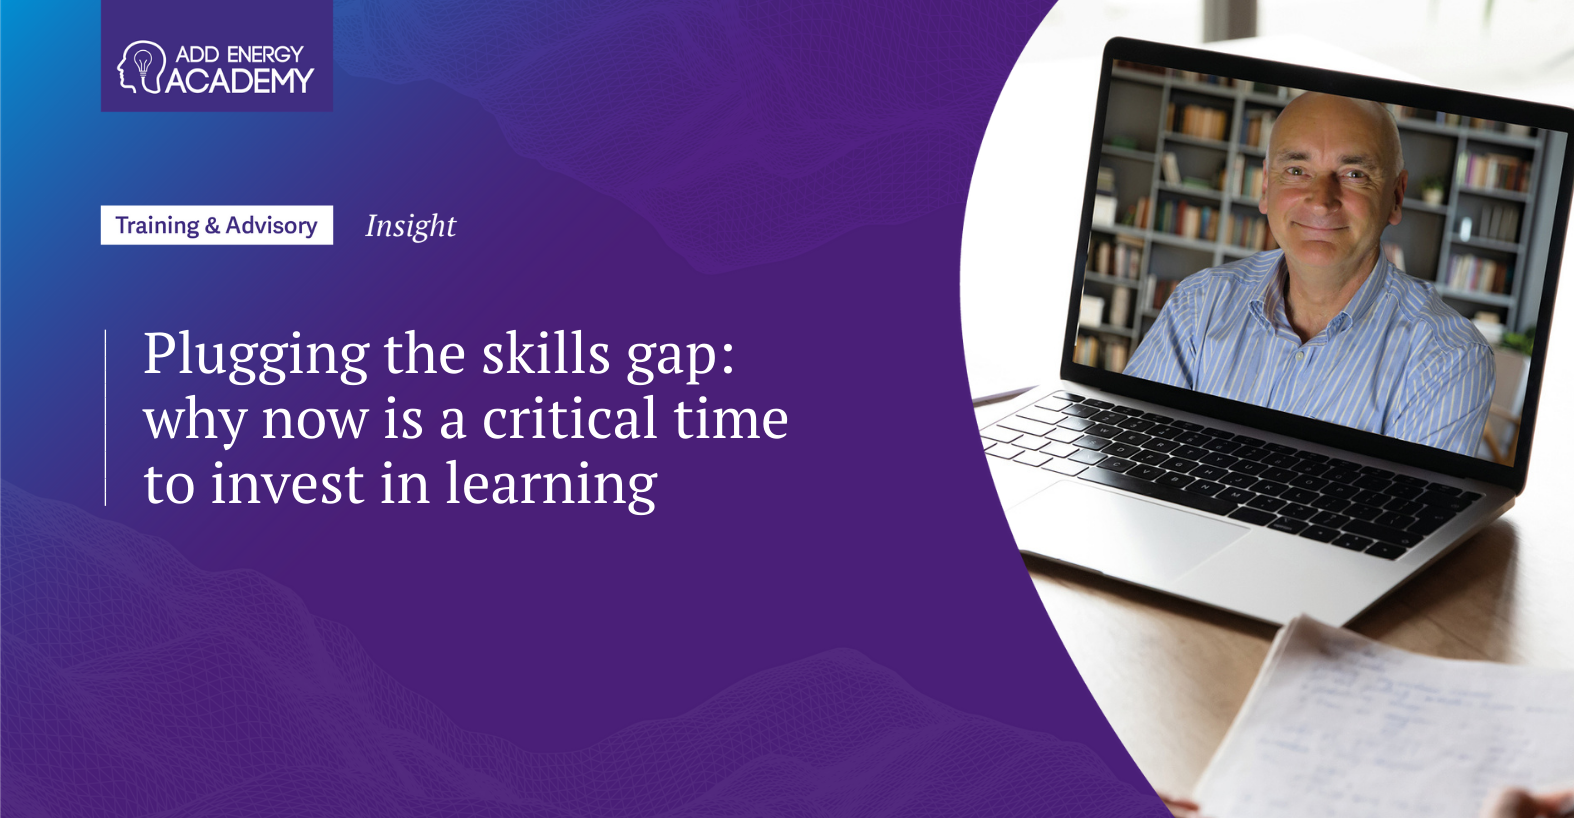 Plugging the skills gap: why now is a critical time to invest in learning